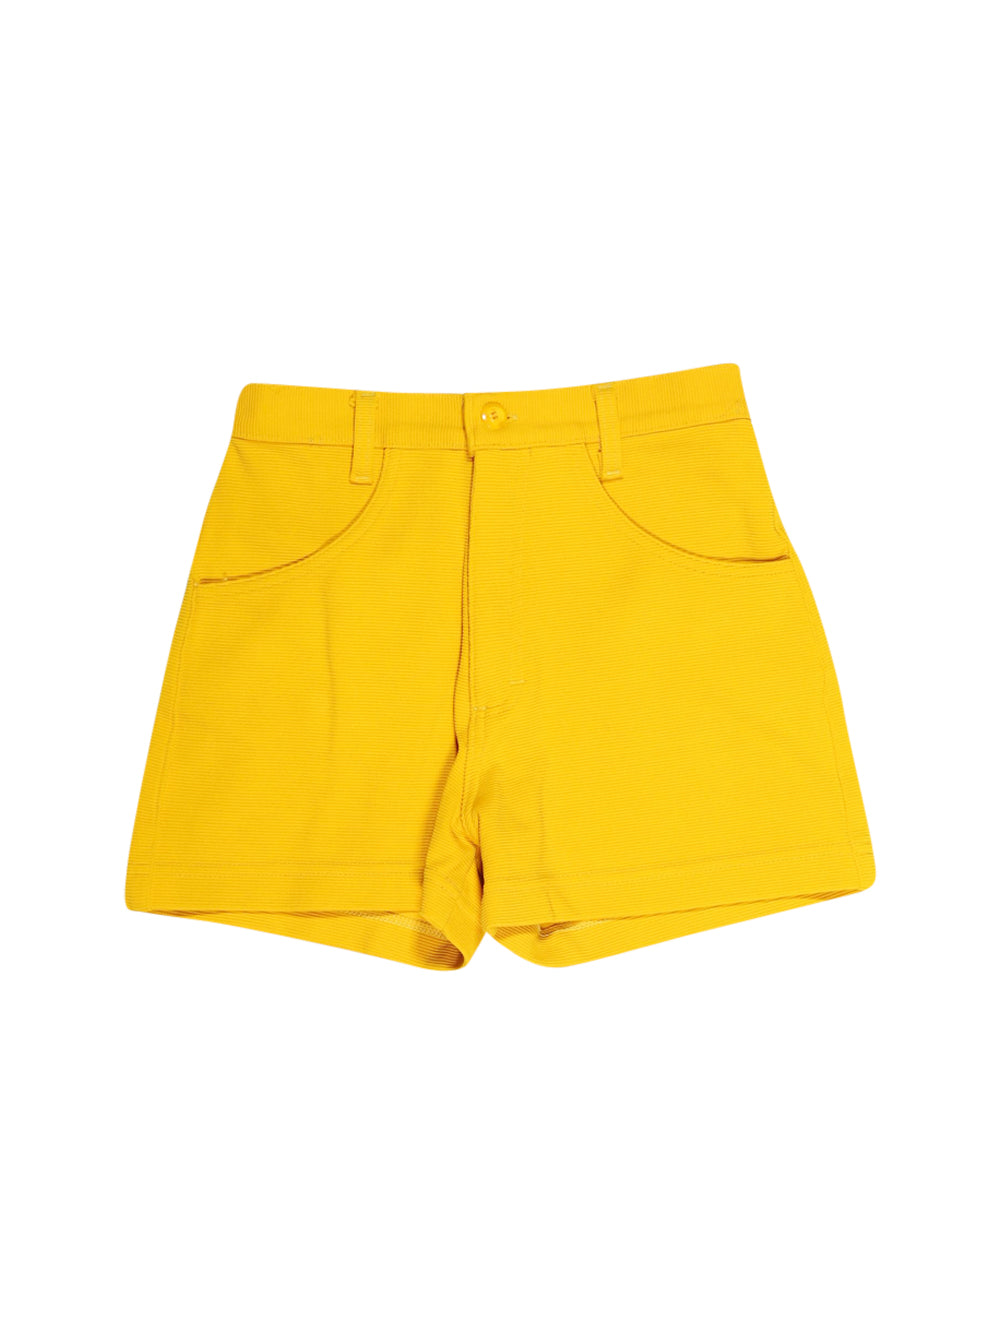 Front photo of Preloved M.OFFICER Yellow Woman's shorts - size 8/S